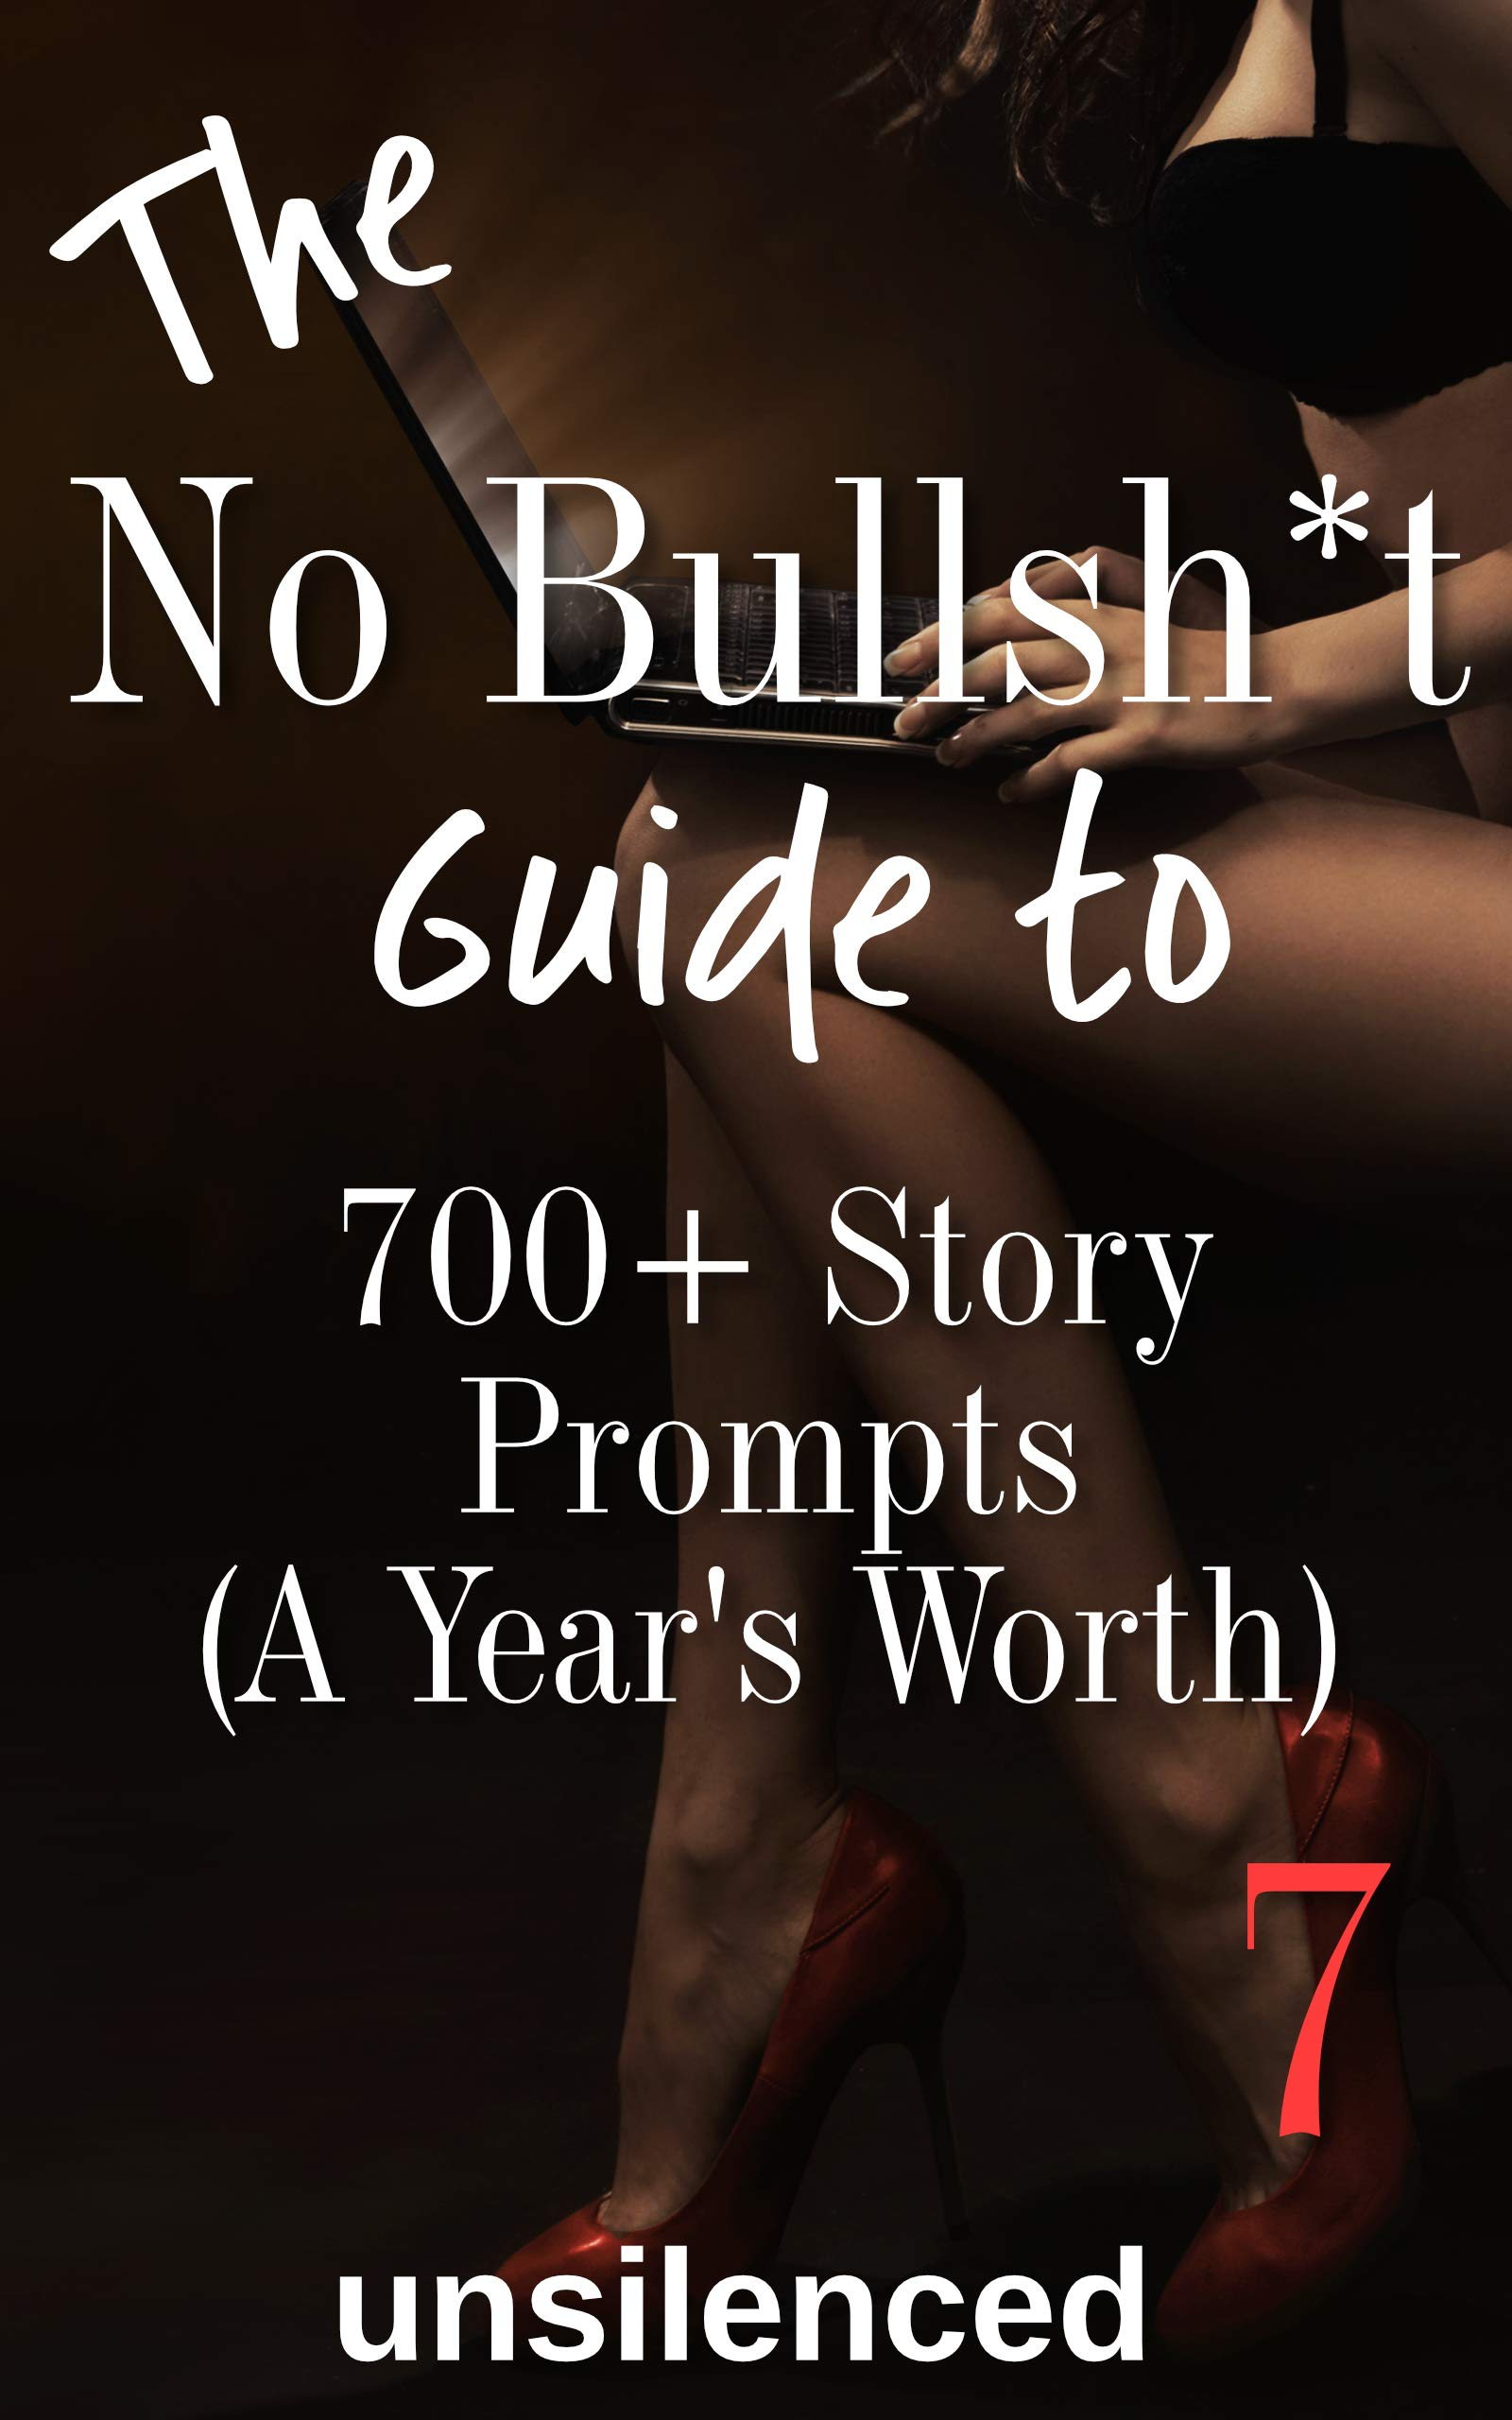 The No Bullsh*t Guide To 700+ Story Prompts (A Year's Worth) (The No Bullsh*t Guide to Writing Erotica Book 7)